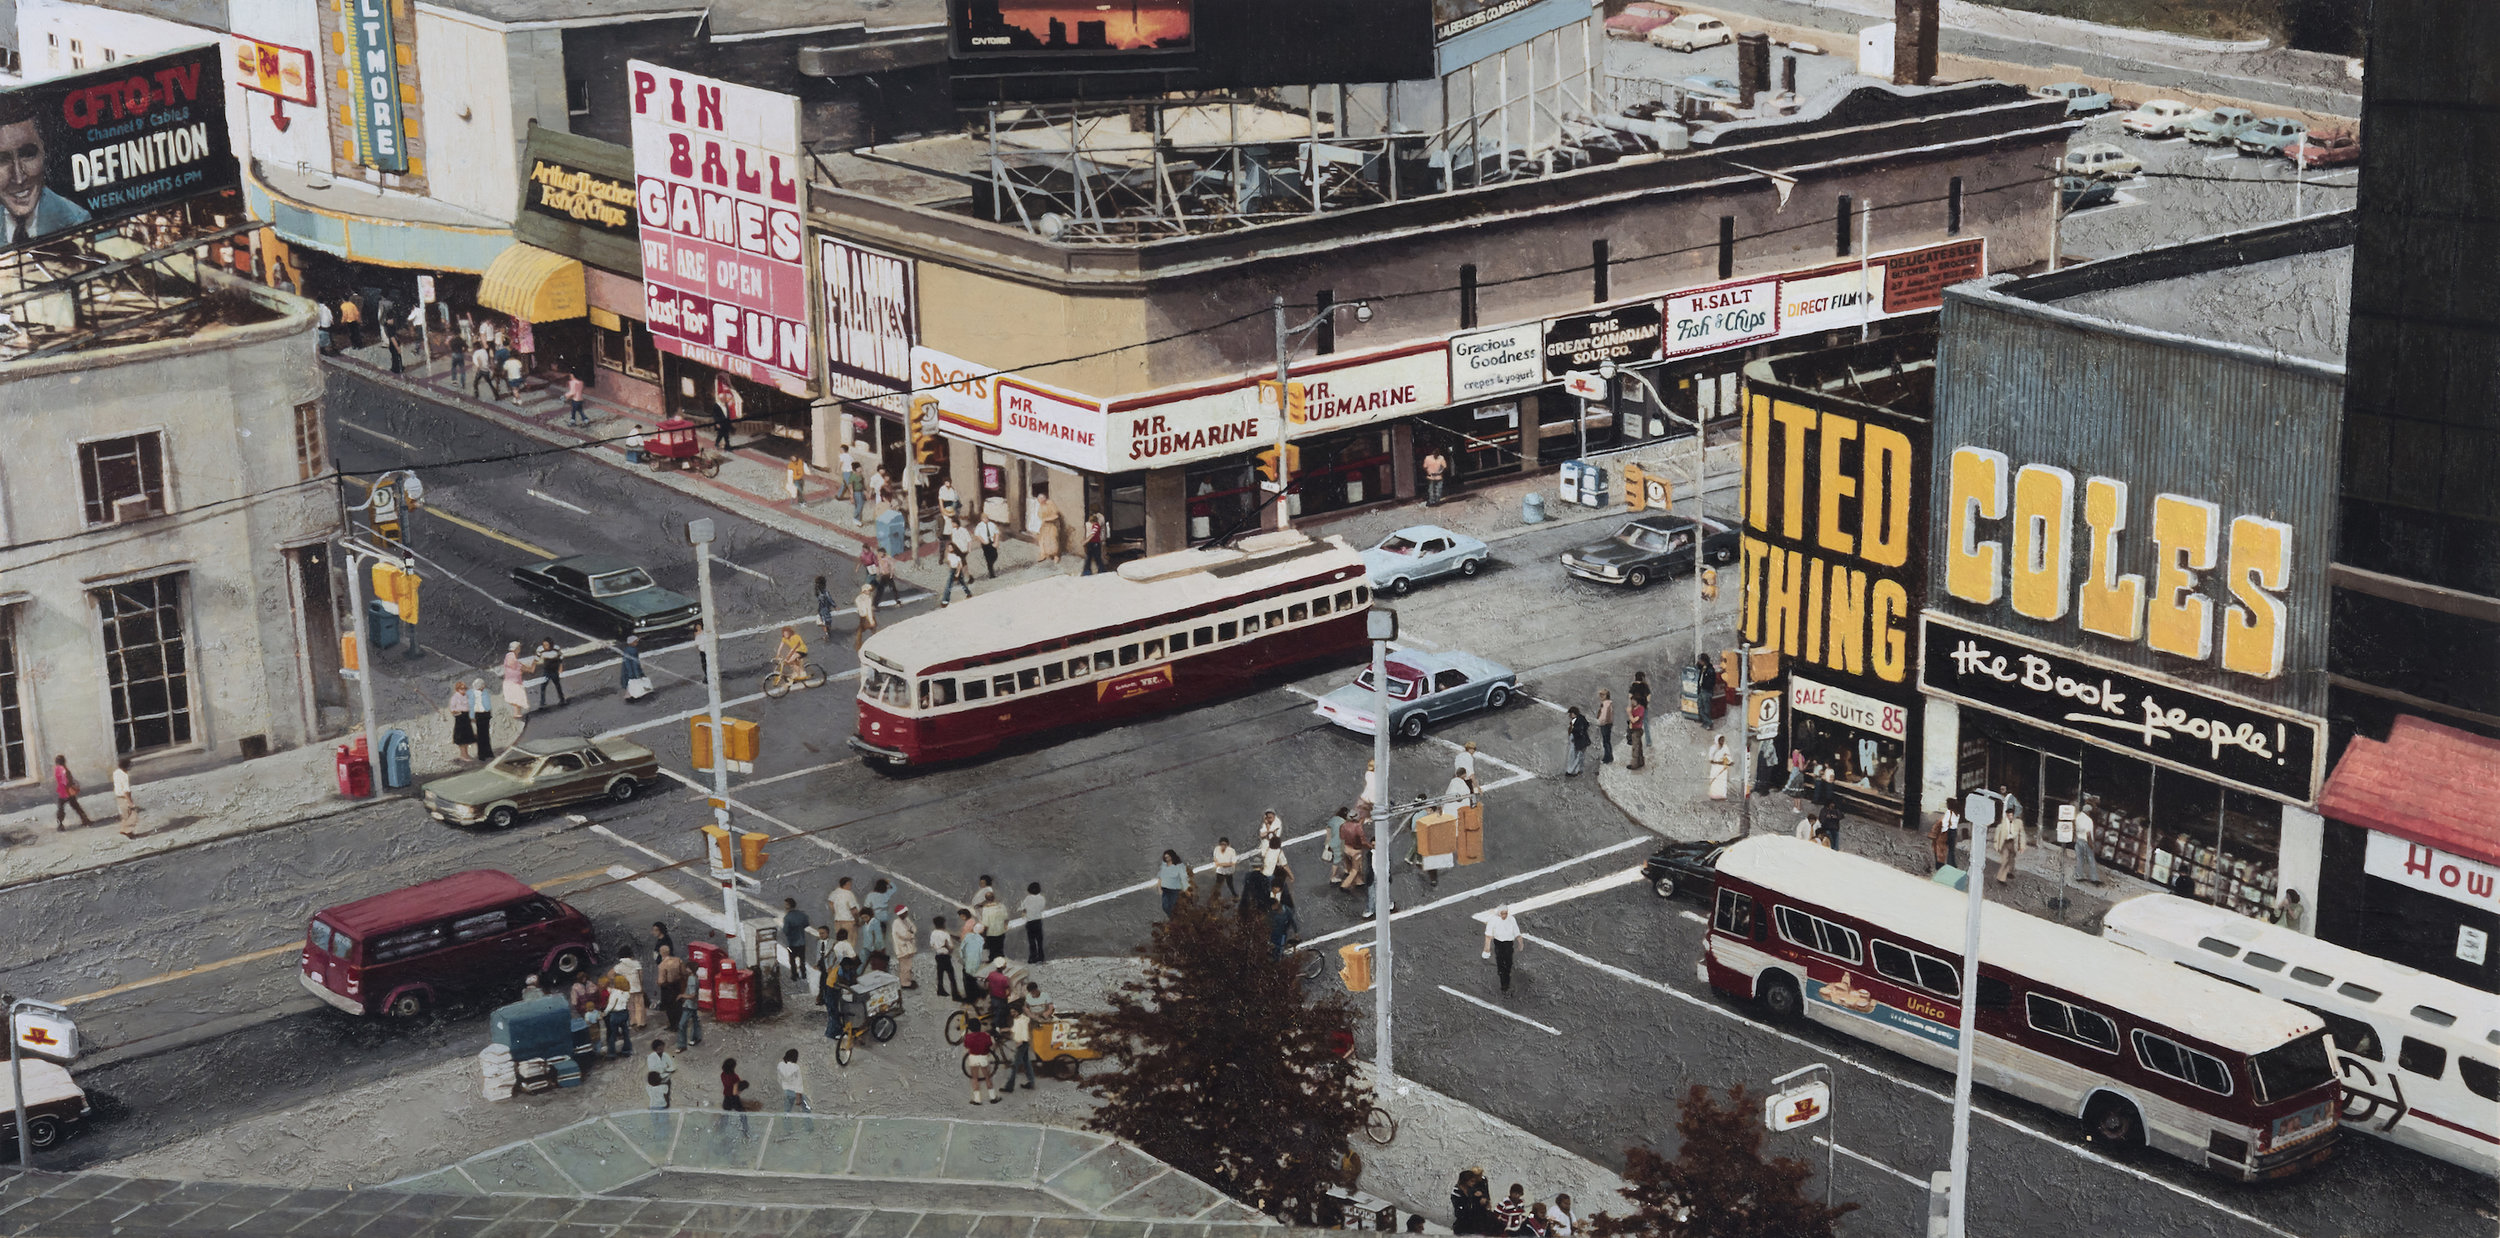 "YONGE AND DUNDAS  1978 by Hanna Kostanski 30"" x 60"" acrylic on wood • Original Photograph by Harvey R. Naylor/CITY OF TORONTO ARCHIVES Fonds 1526"